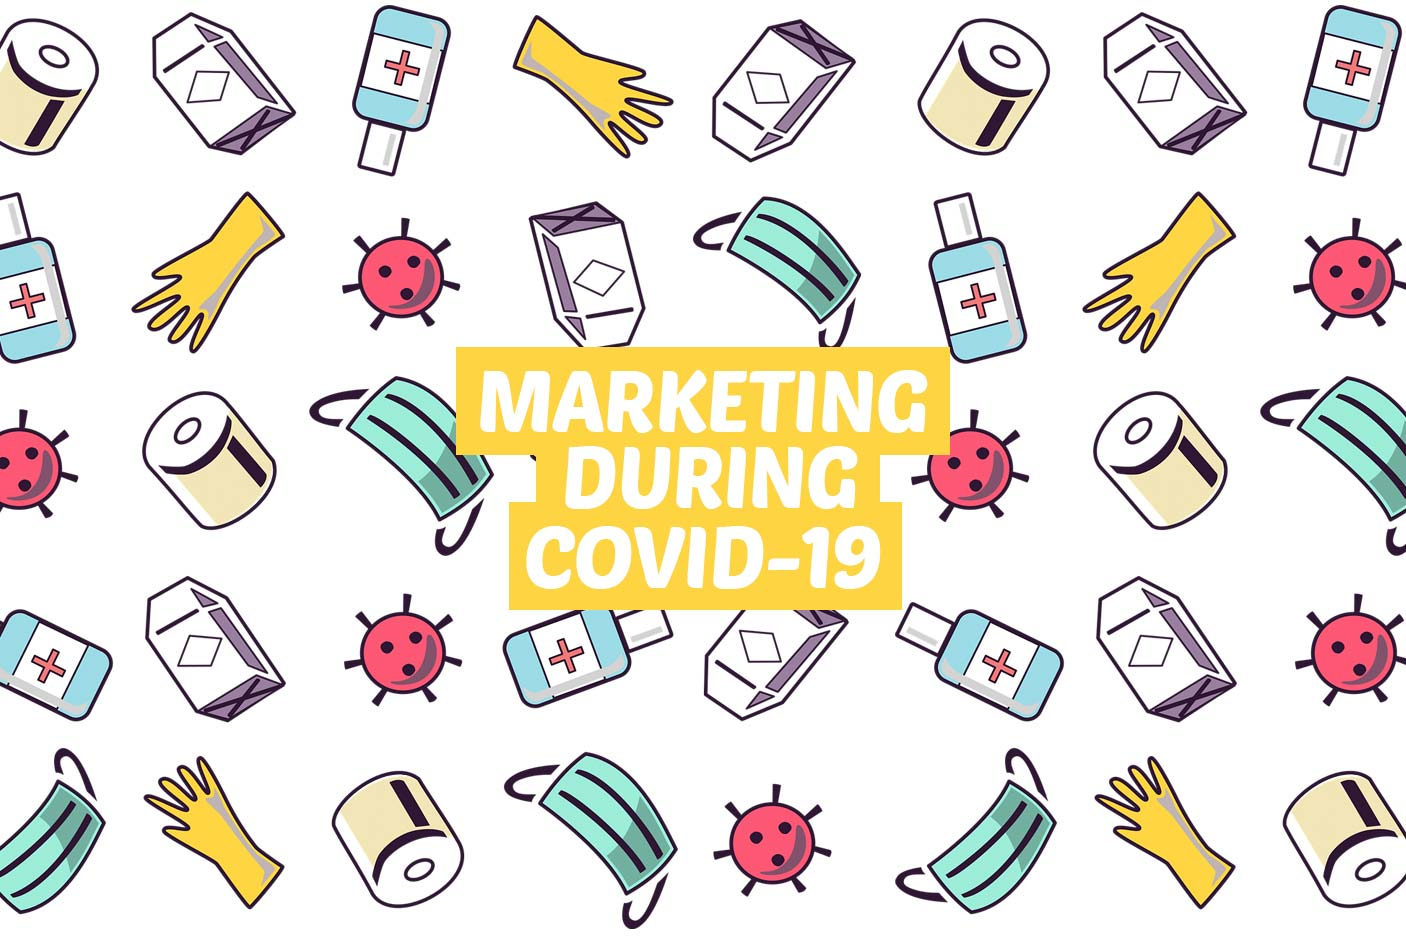 098. Marketing During Covid-19